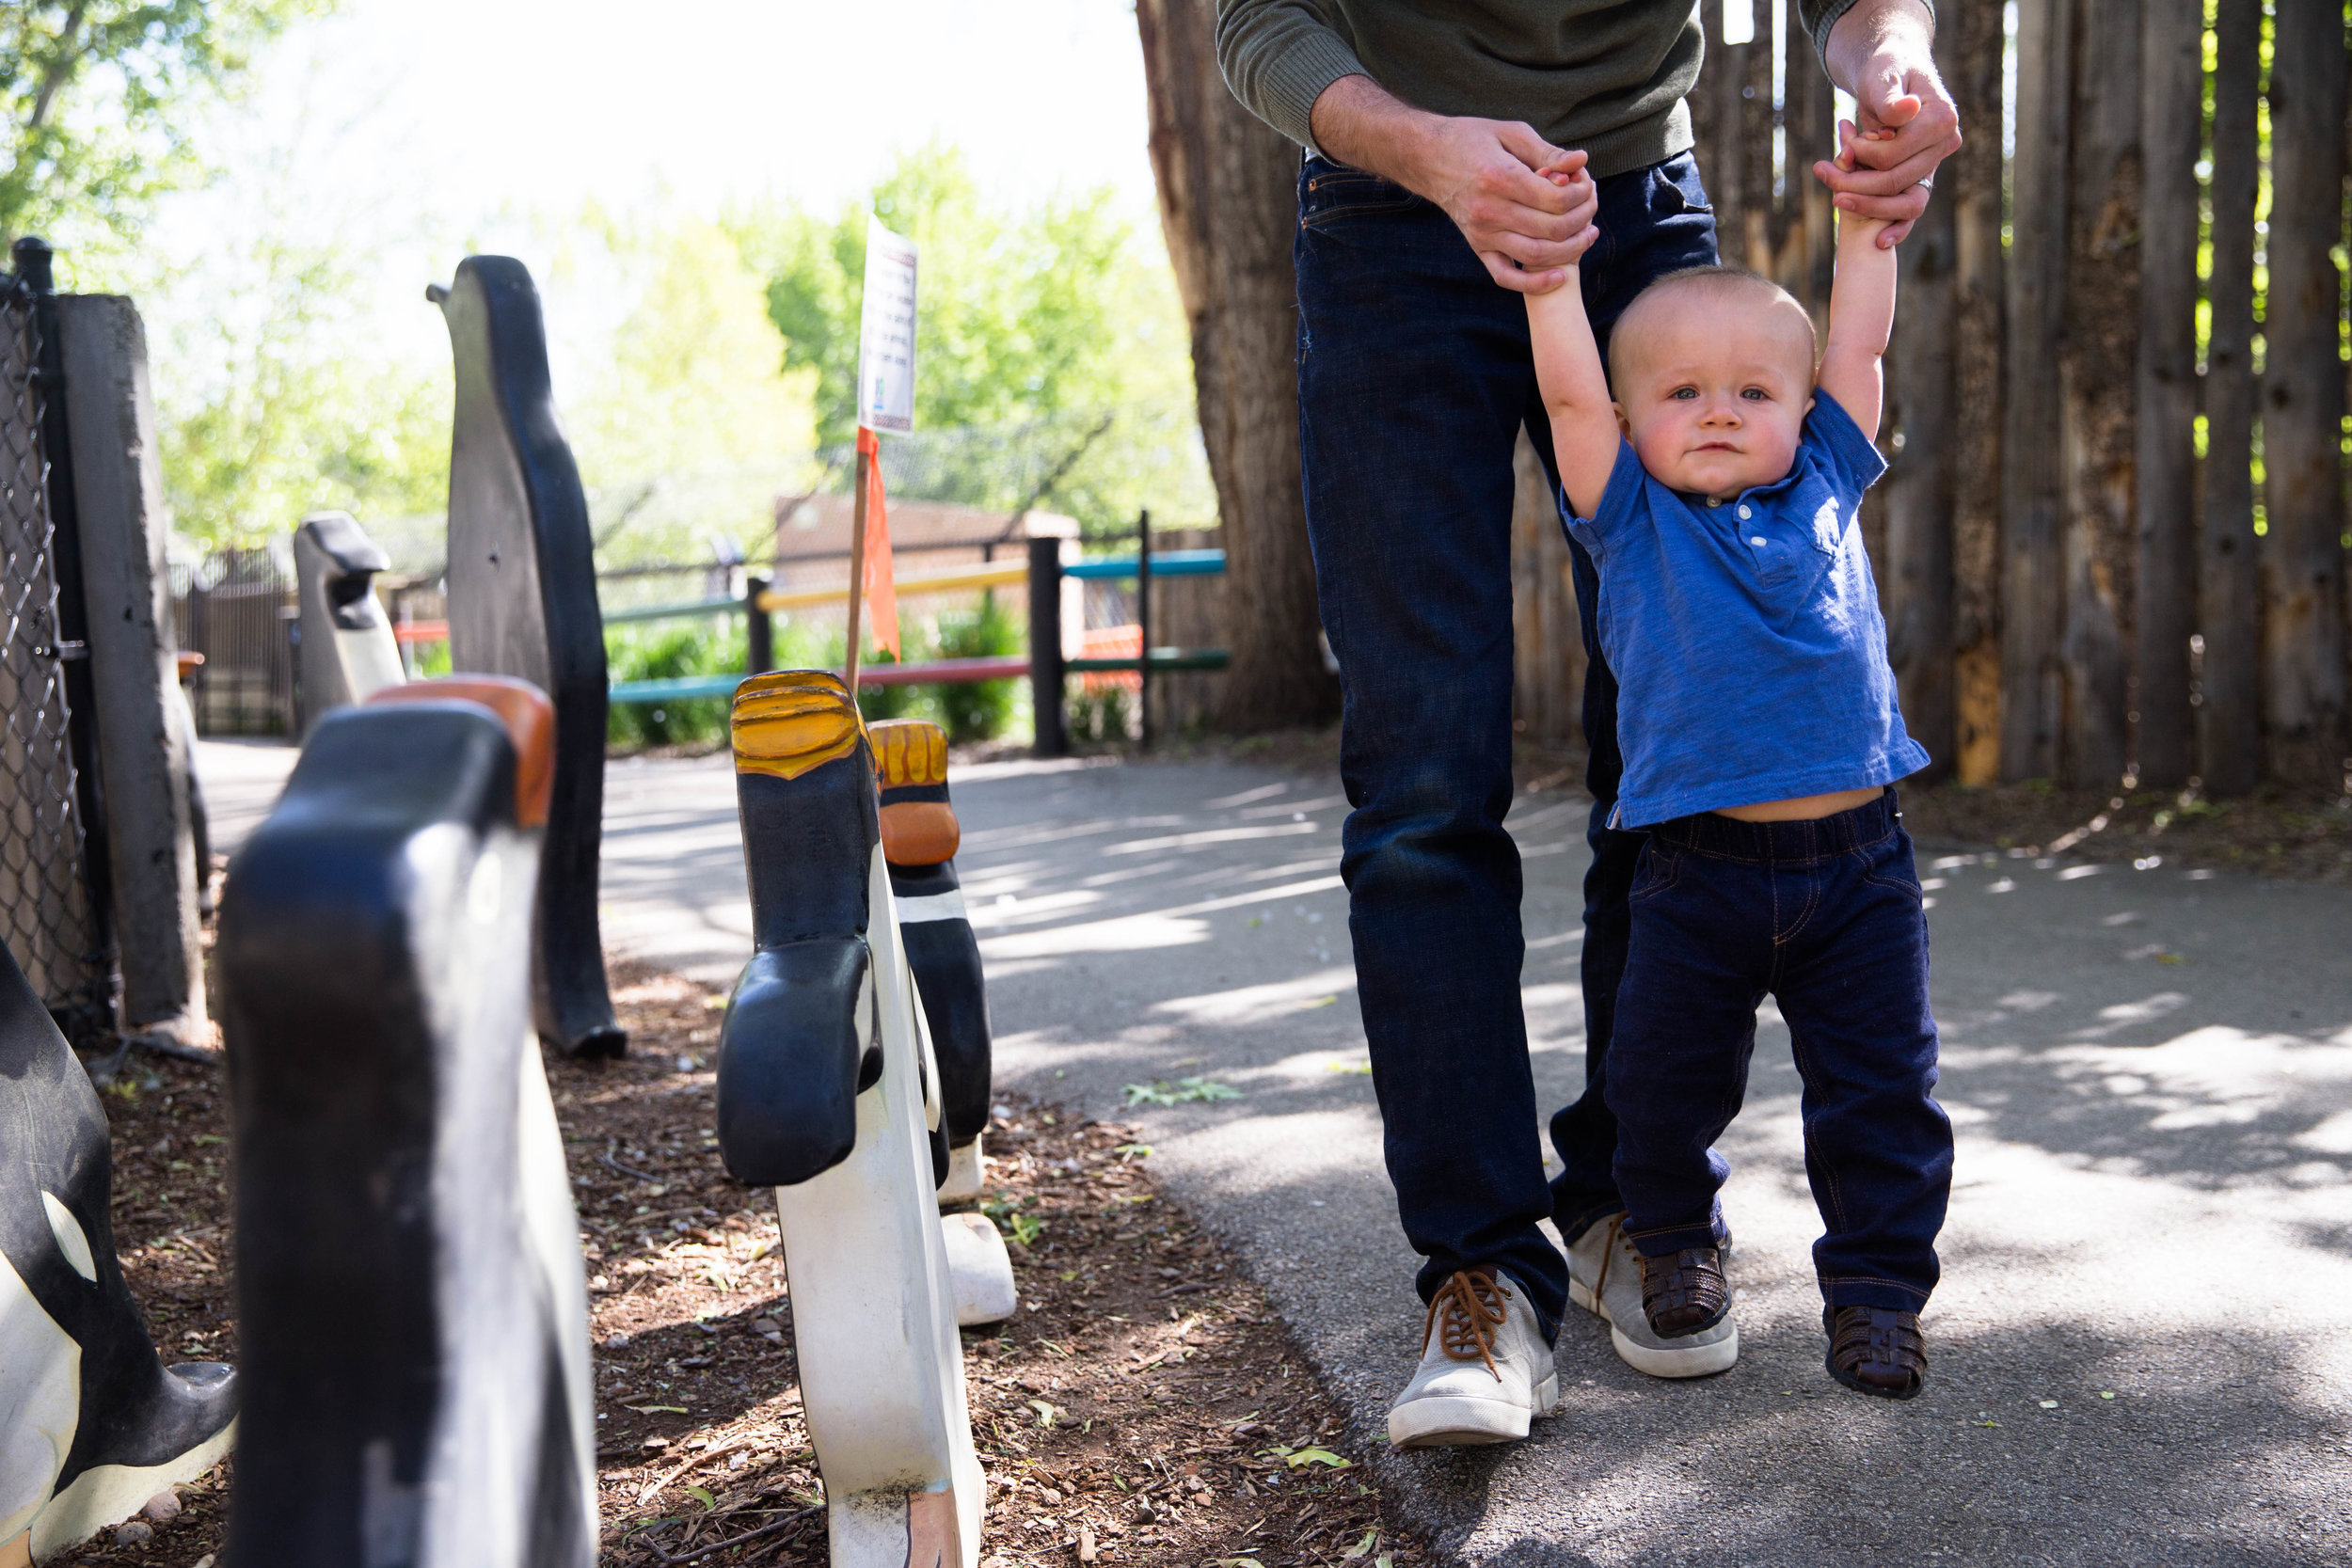 Dad holding son up by the arms as they walk down the path at Zoo Boise. Wooden penguins to the left where you get to describe each one and match the breeds.